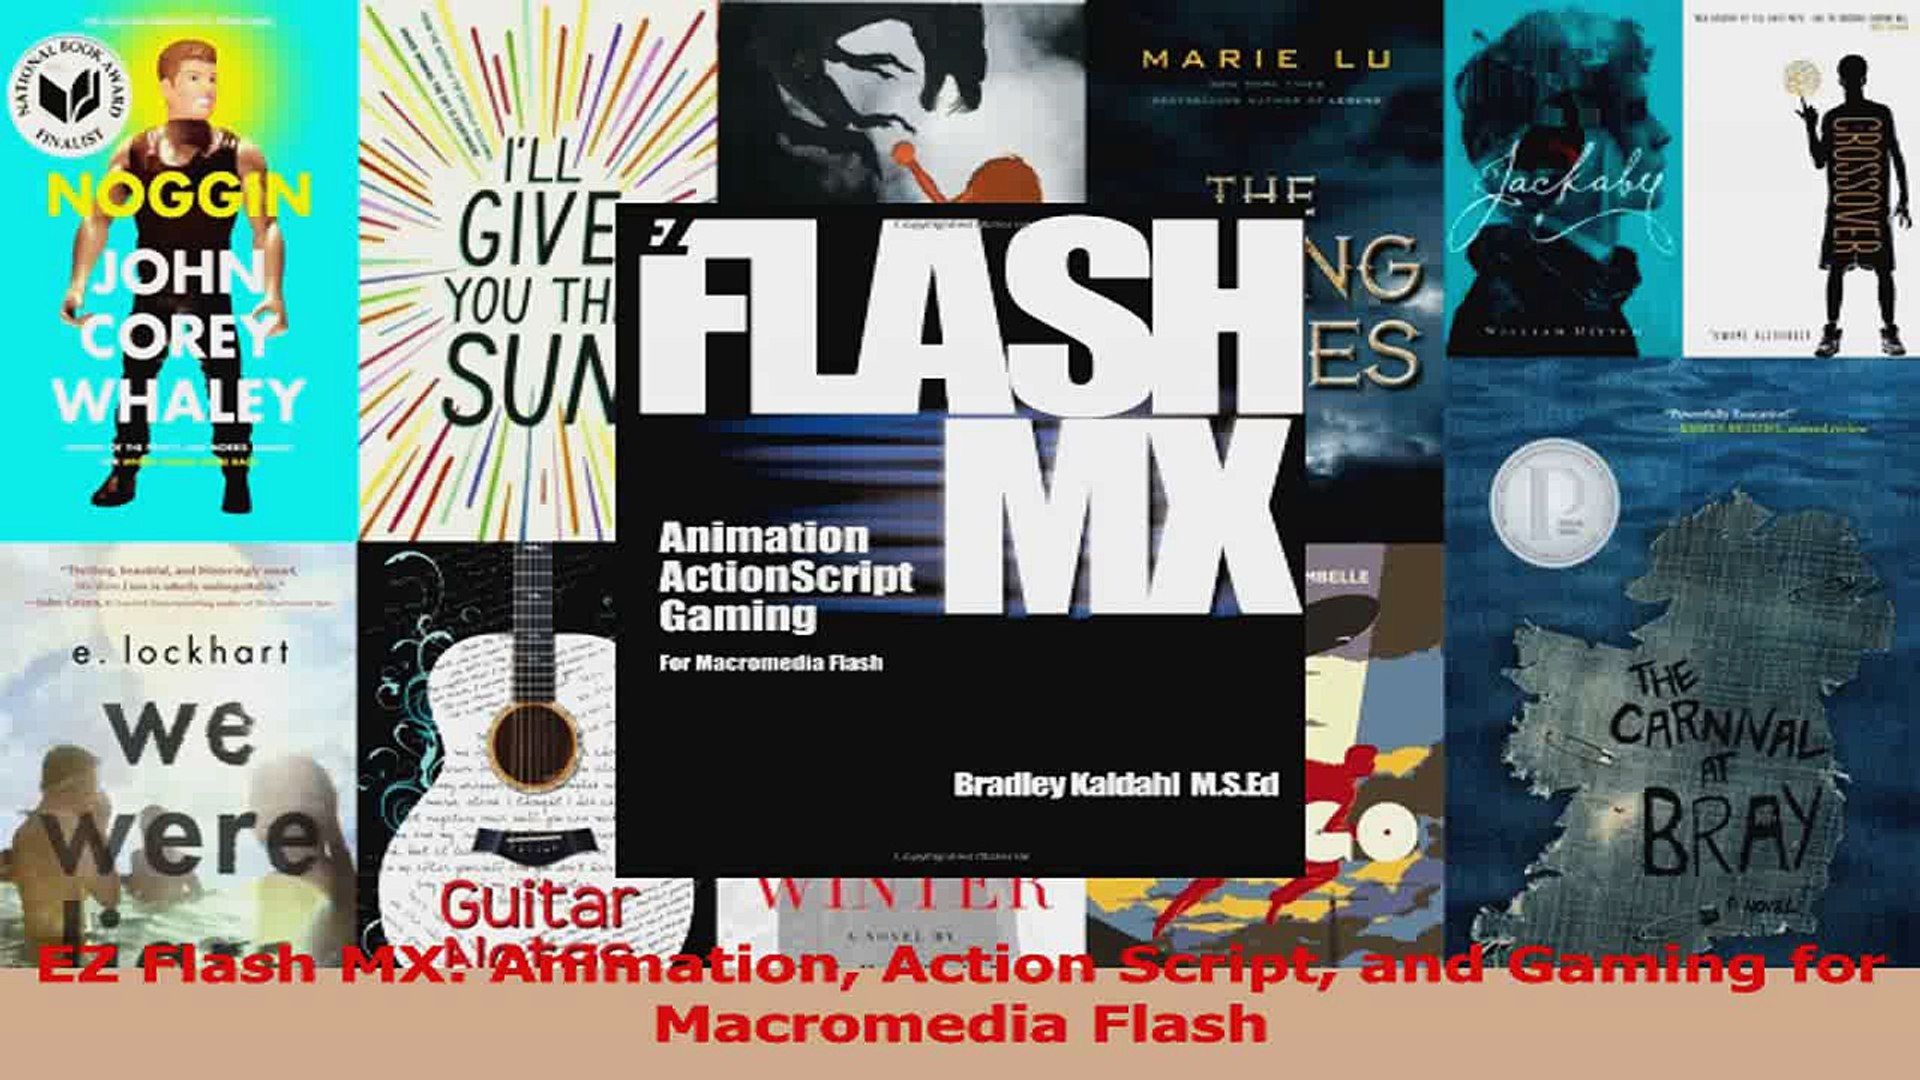 EZ Flash MX Animation Action Script and Gaming for Macromedia Flash PDF